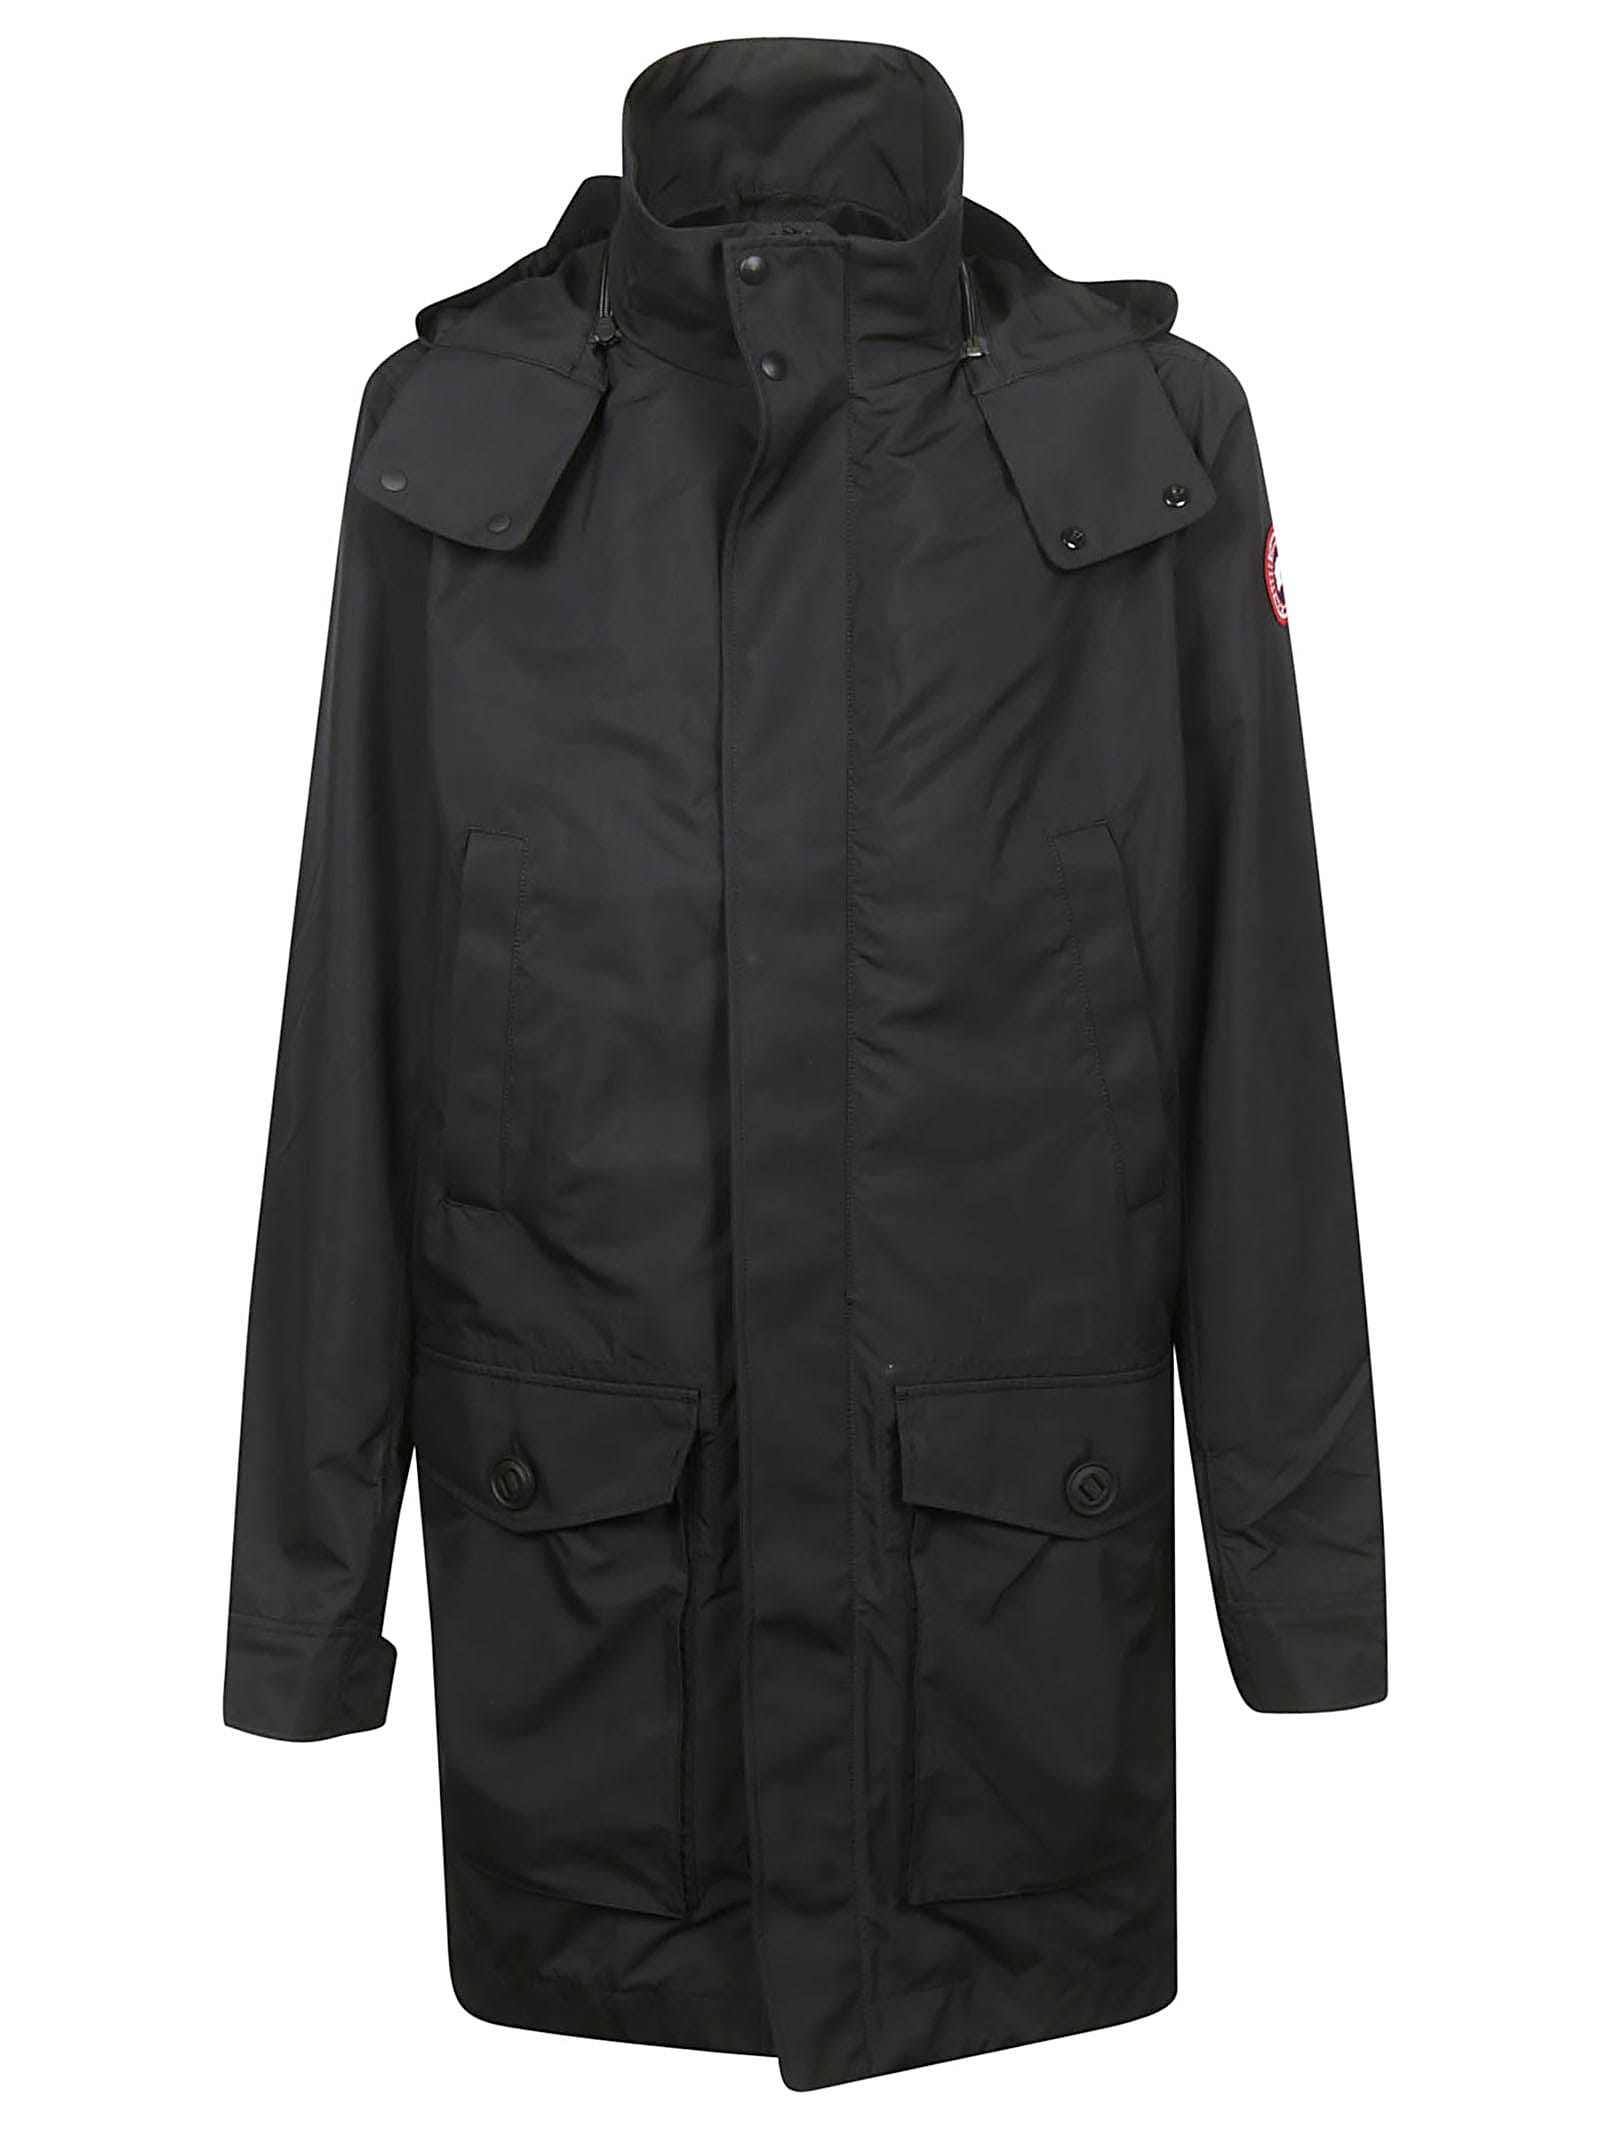 841d81354ac Canada Goose Padded Hooded Jacket